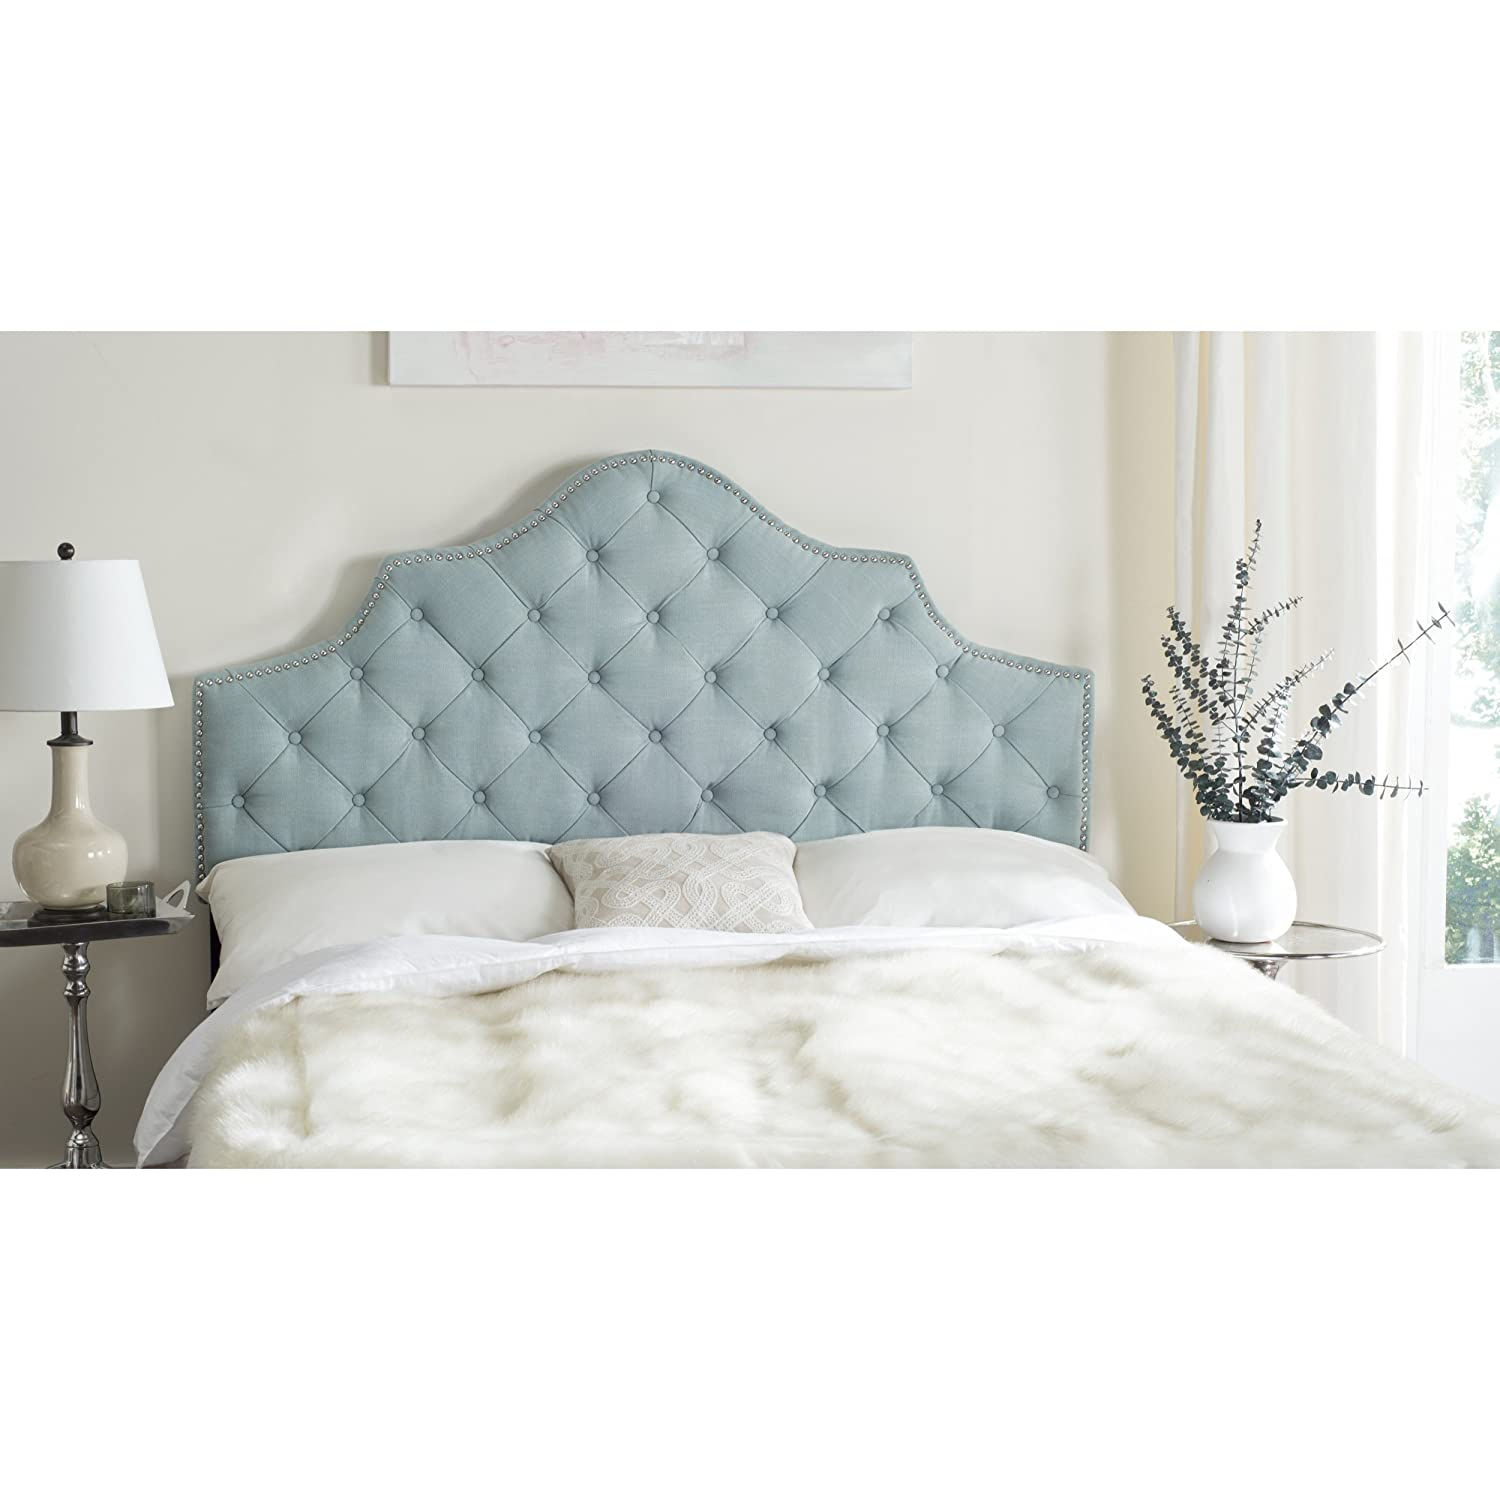 upholstered headboard arebelle hayneedle product linen safavieh detail tufted cfm